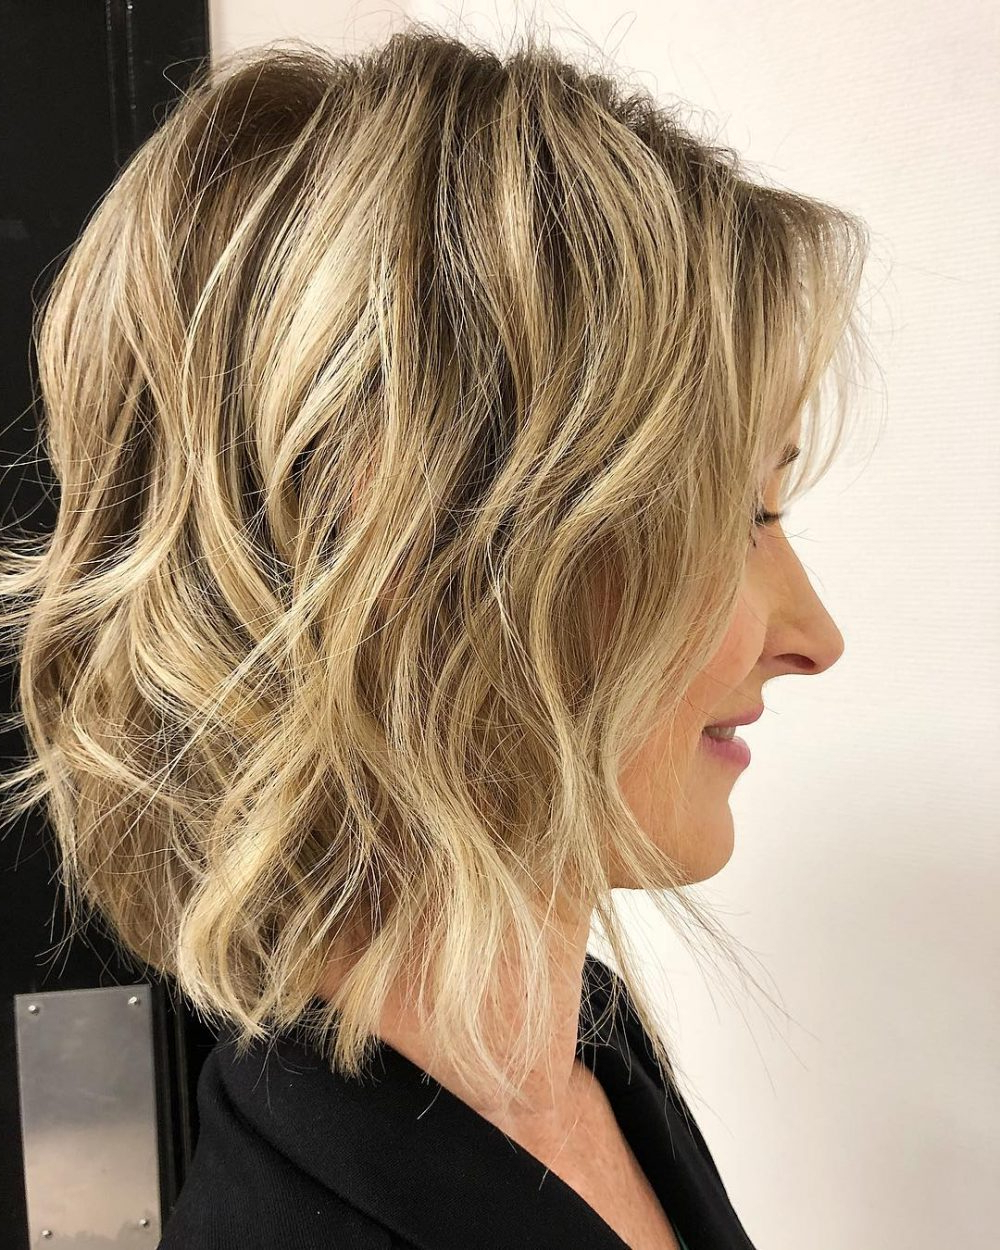 43 Perfect Short Hairstyles For Fine Hair In 2018 With Choppy Wispy Blonde Balayage Bob Hairstyles (View 18 of 20)